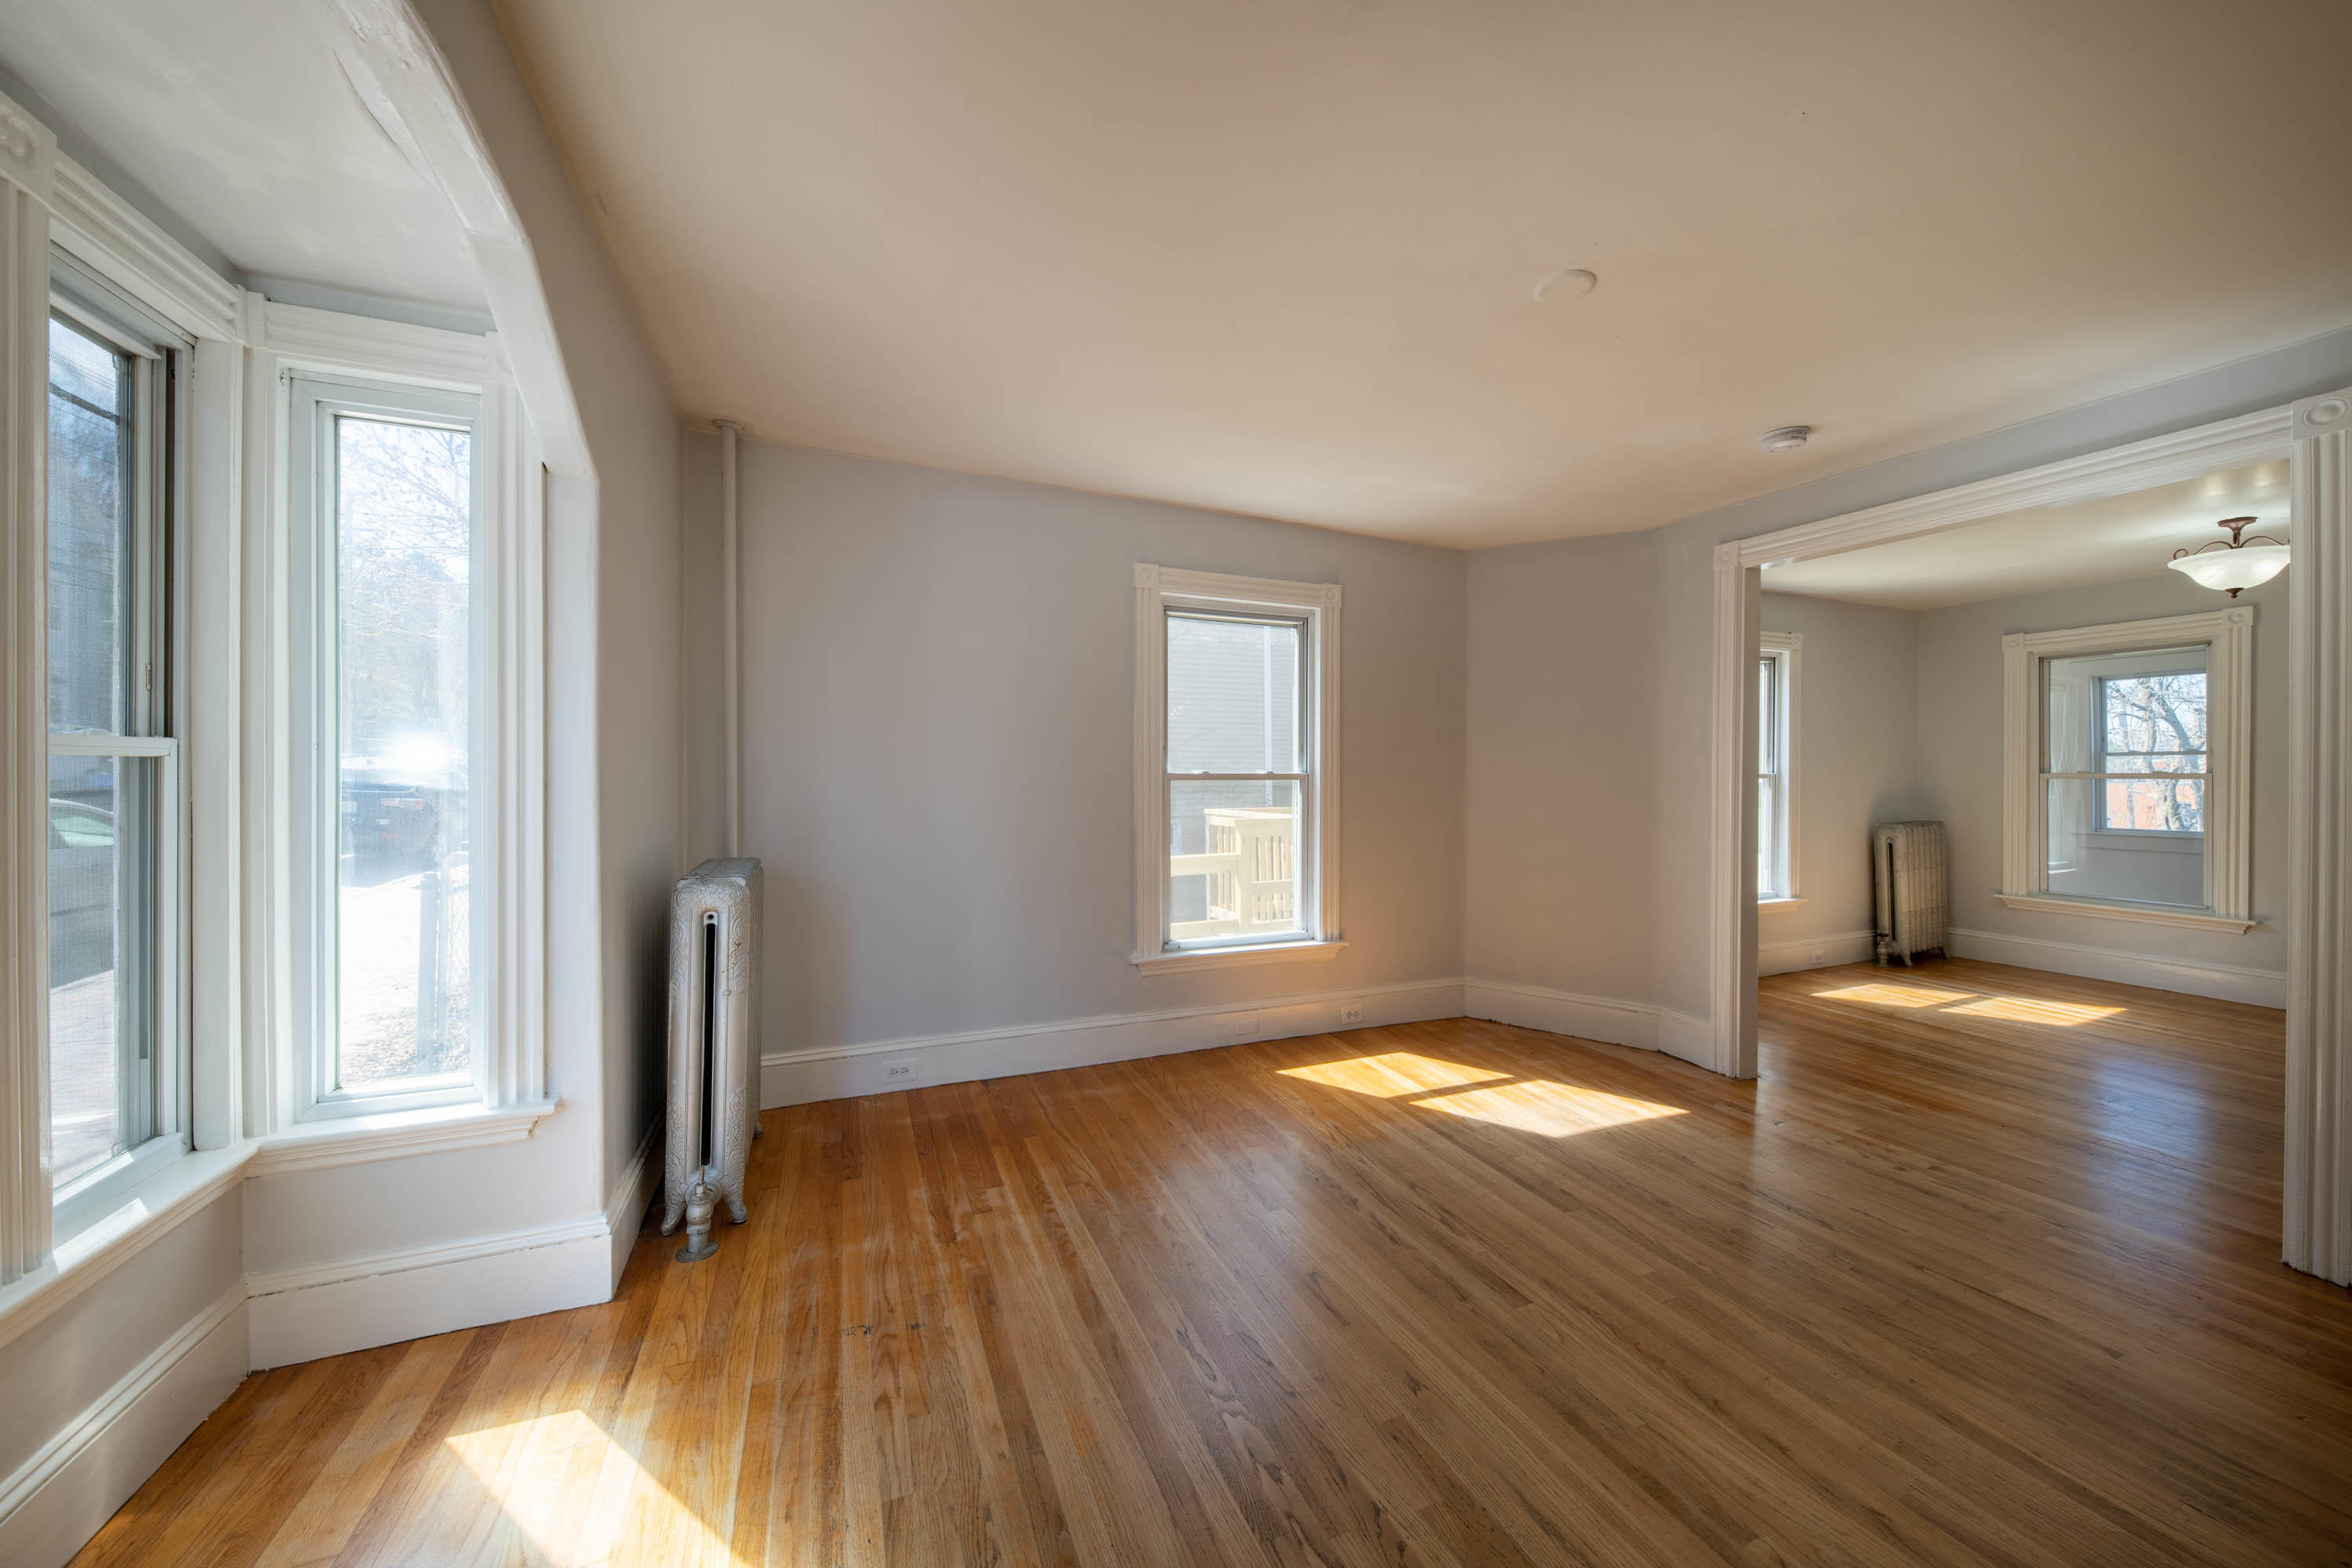 Main image for MLS listing 1488510